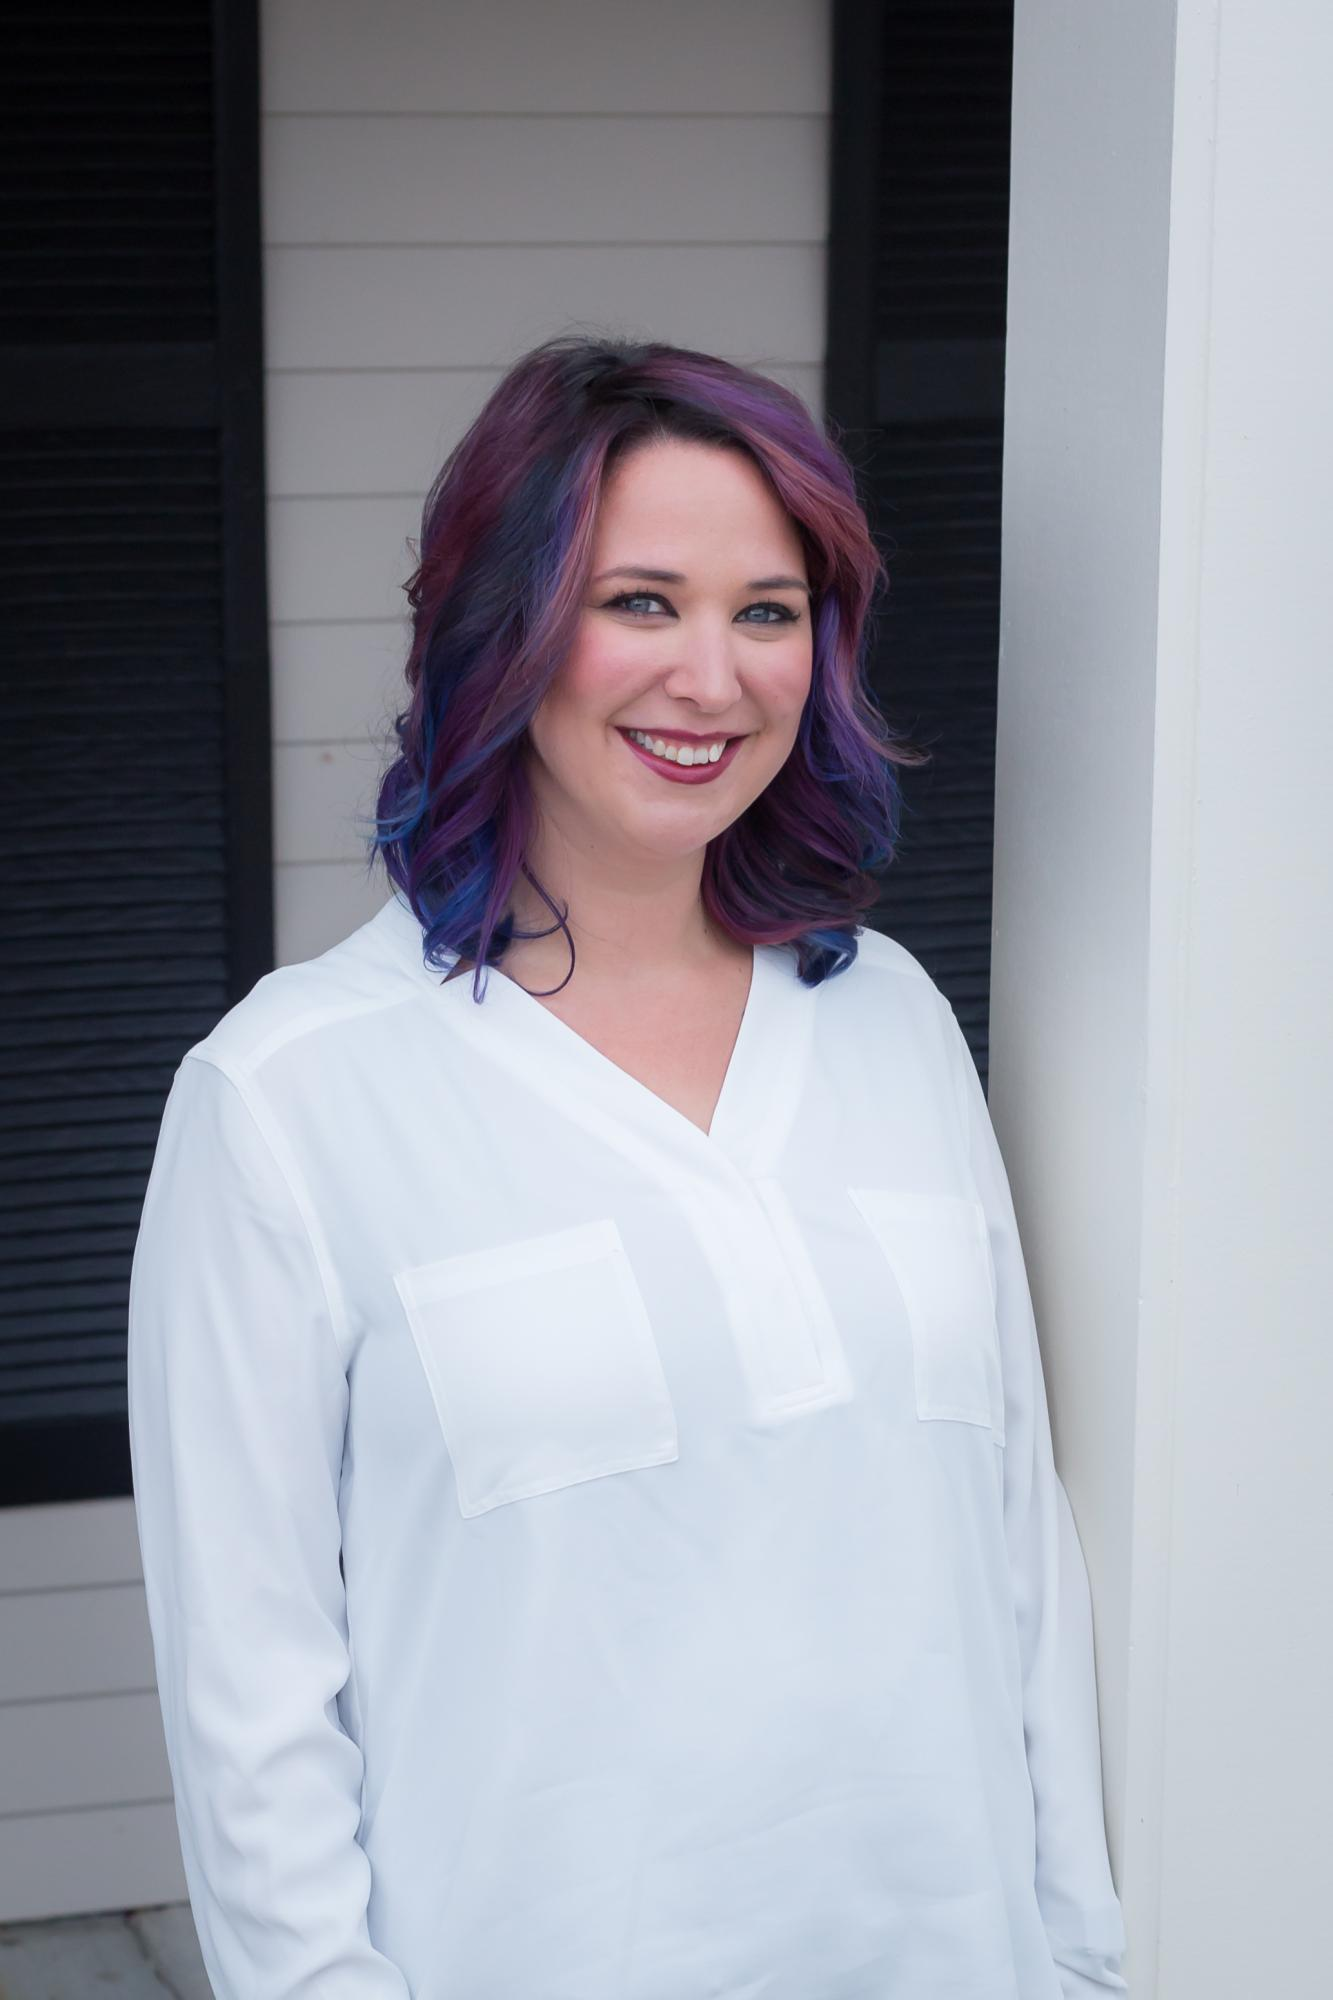 Jen Taylor - Hair Stylist, Makeup Artist, Regional Educator for Eufora International